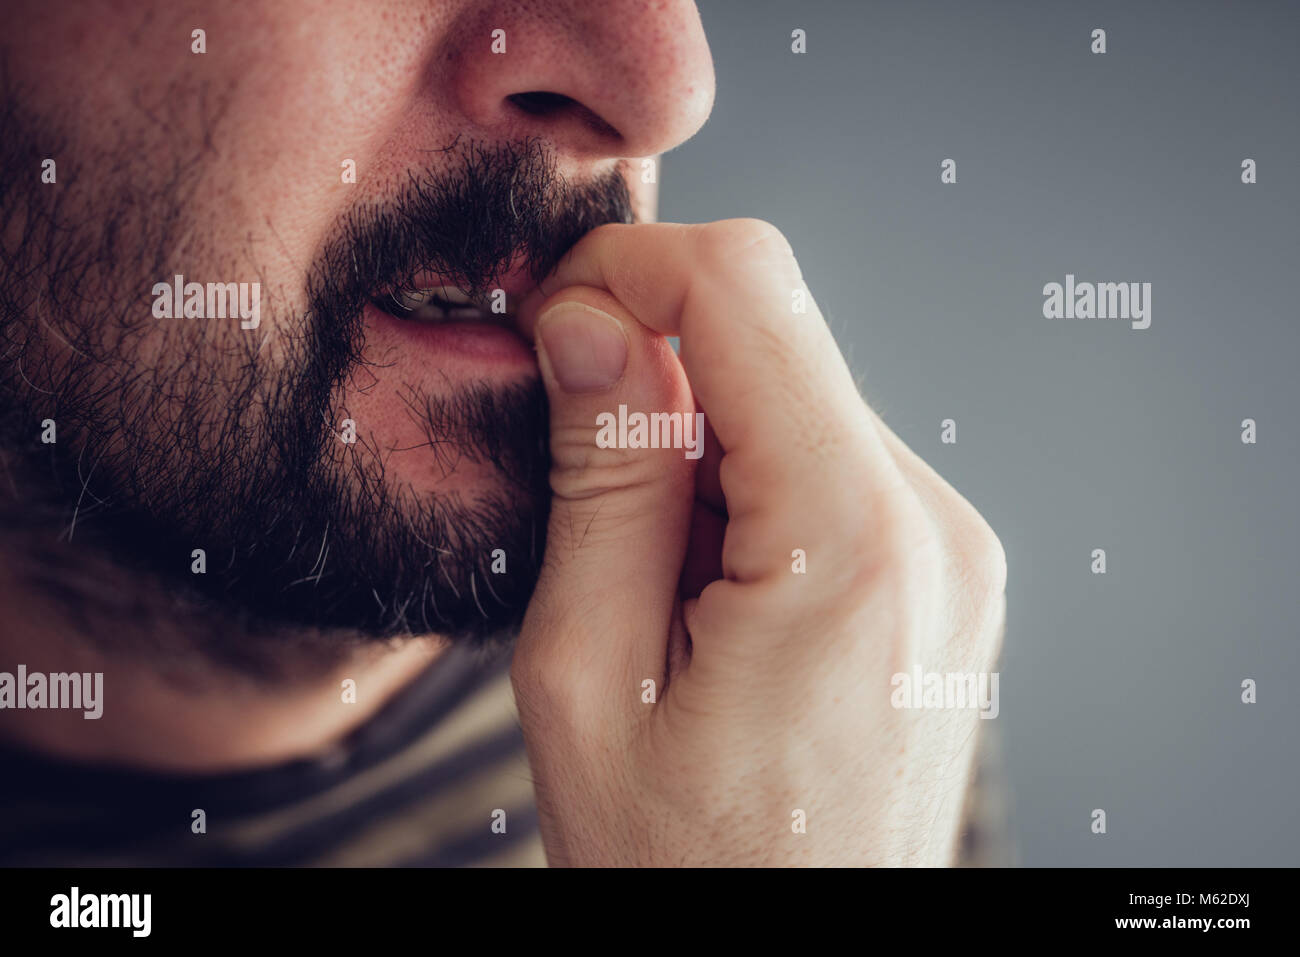 Close up of male biting fingernails nerveux Photo Stock